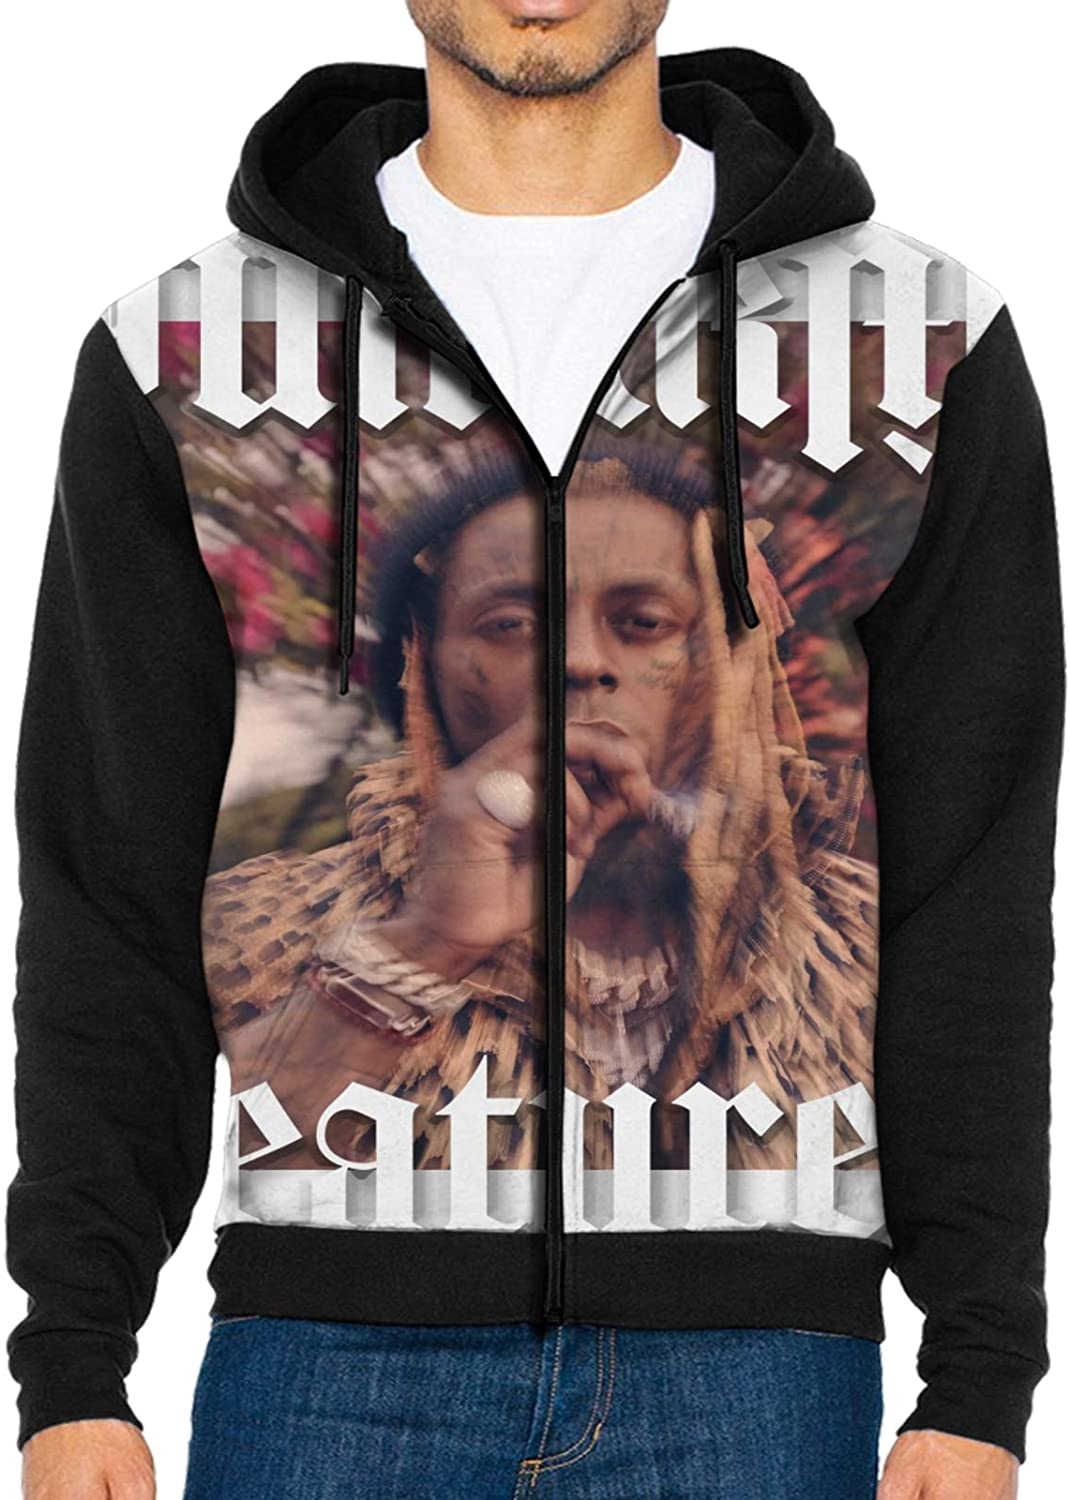 NaohBent Lil Wayne Funeral Man Jacket Sweater Winter Casual Hoodie